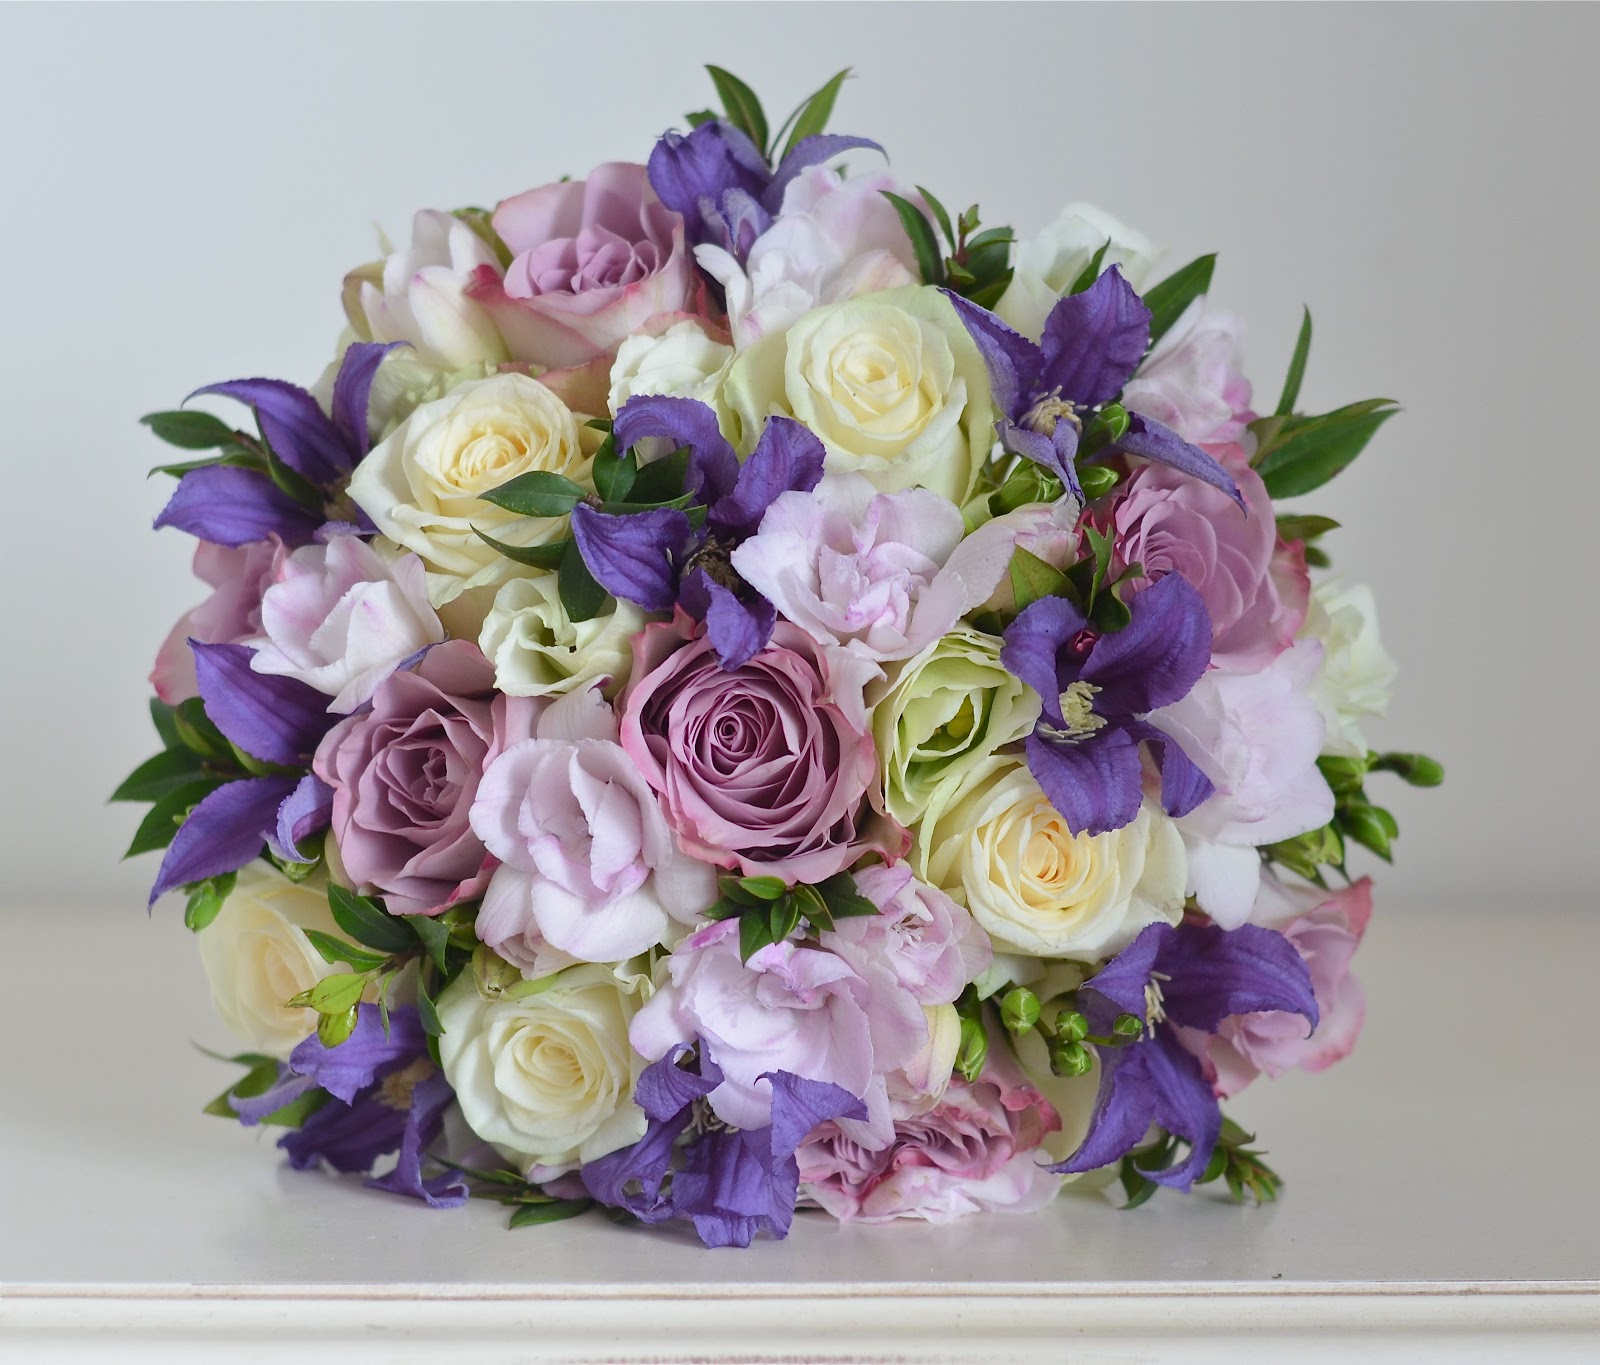 Wedding flowers blog sues wedding flowersthe shoe exton sues wedding flowersthe shoe exton mightylinksfo